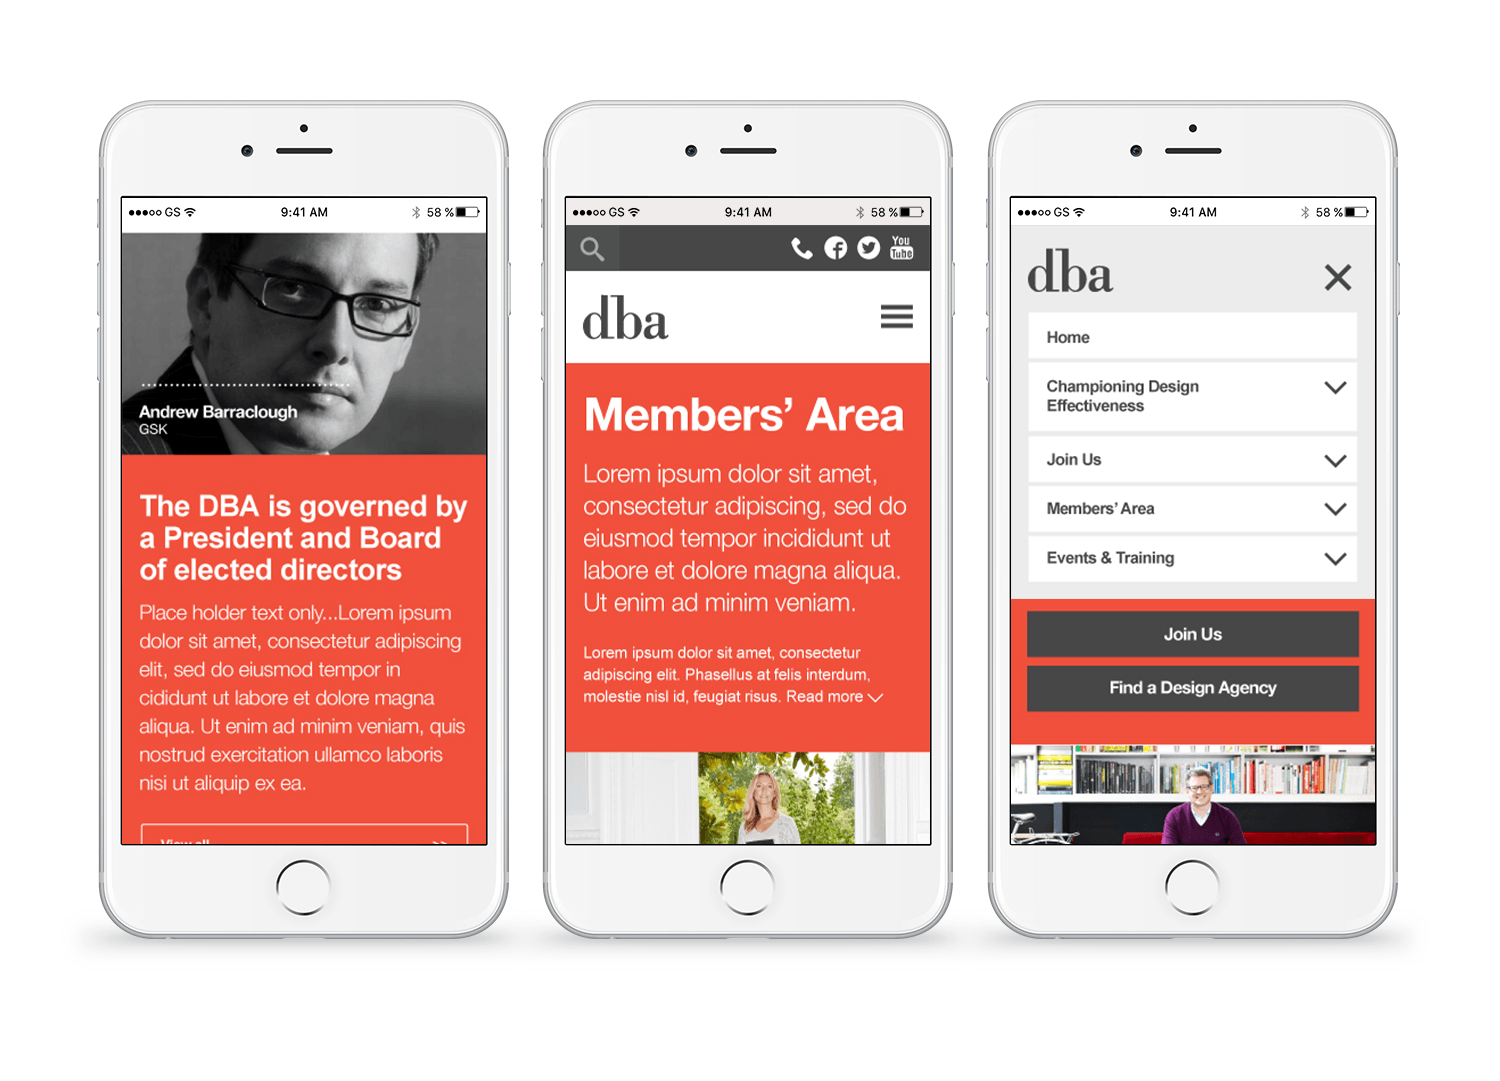 DBA website on mobile